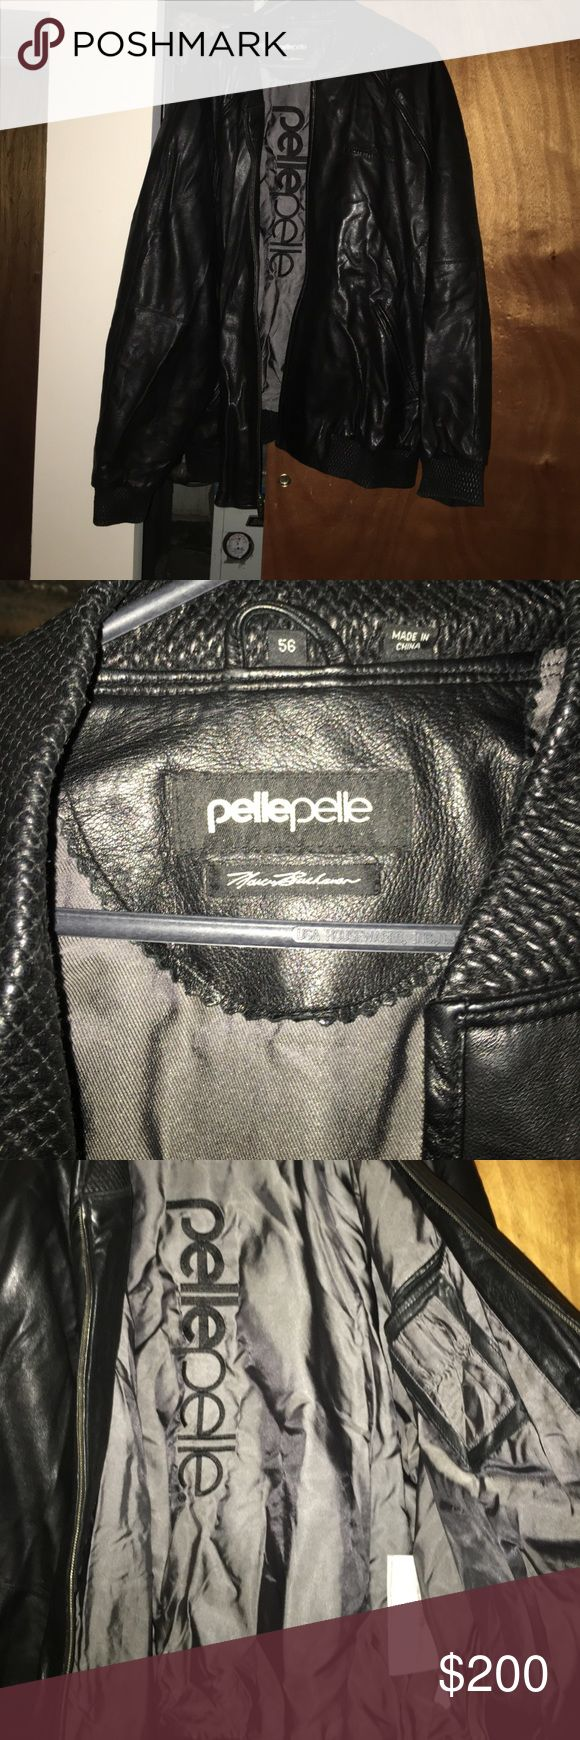 Black Pelle Pelle leather jacket Previously loved, but still in great condition! Pelle Pelle Jackets & Coats